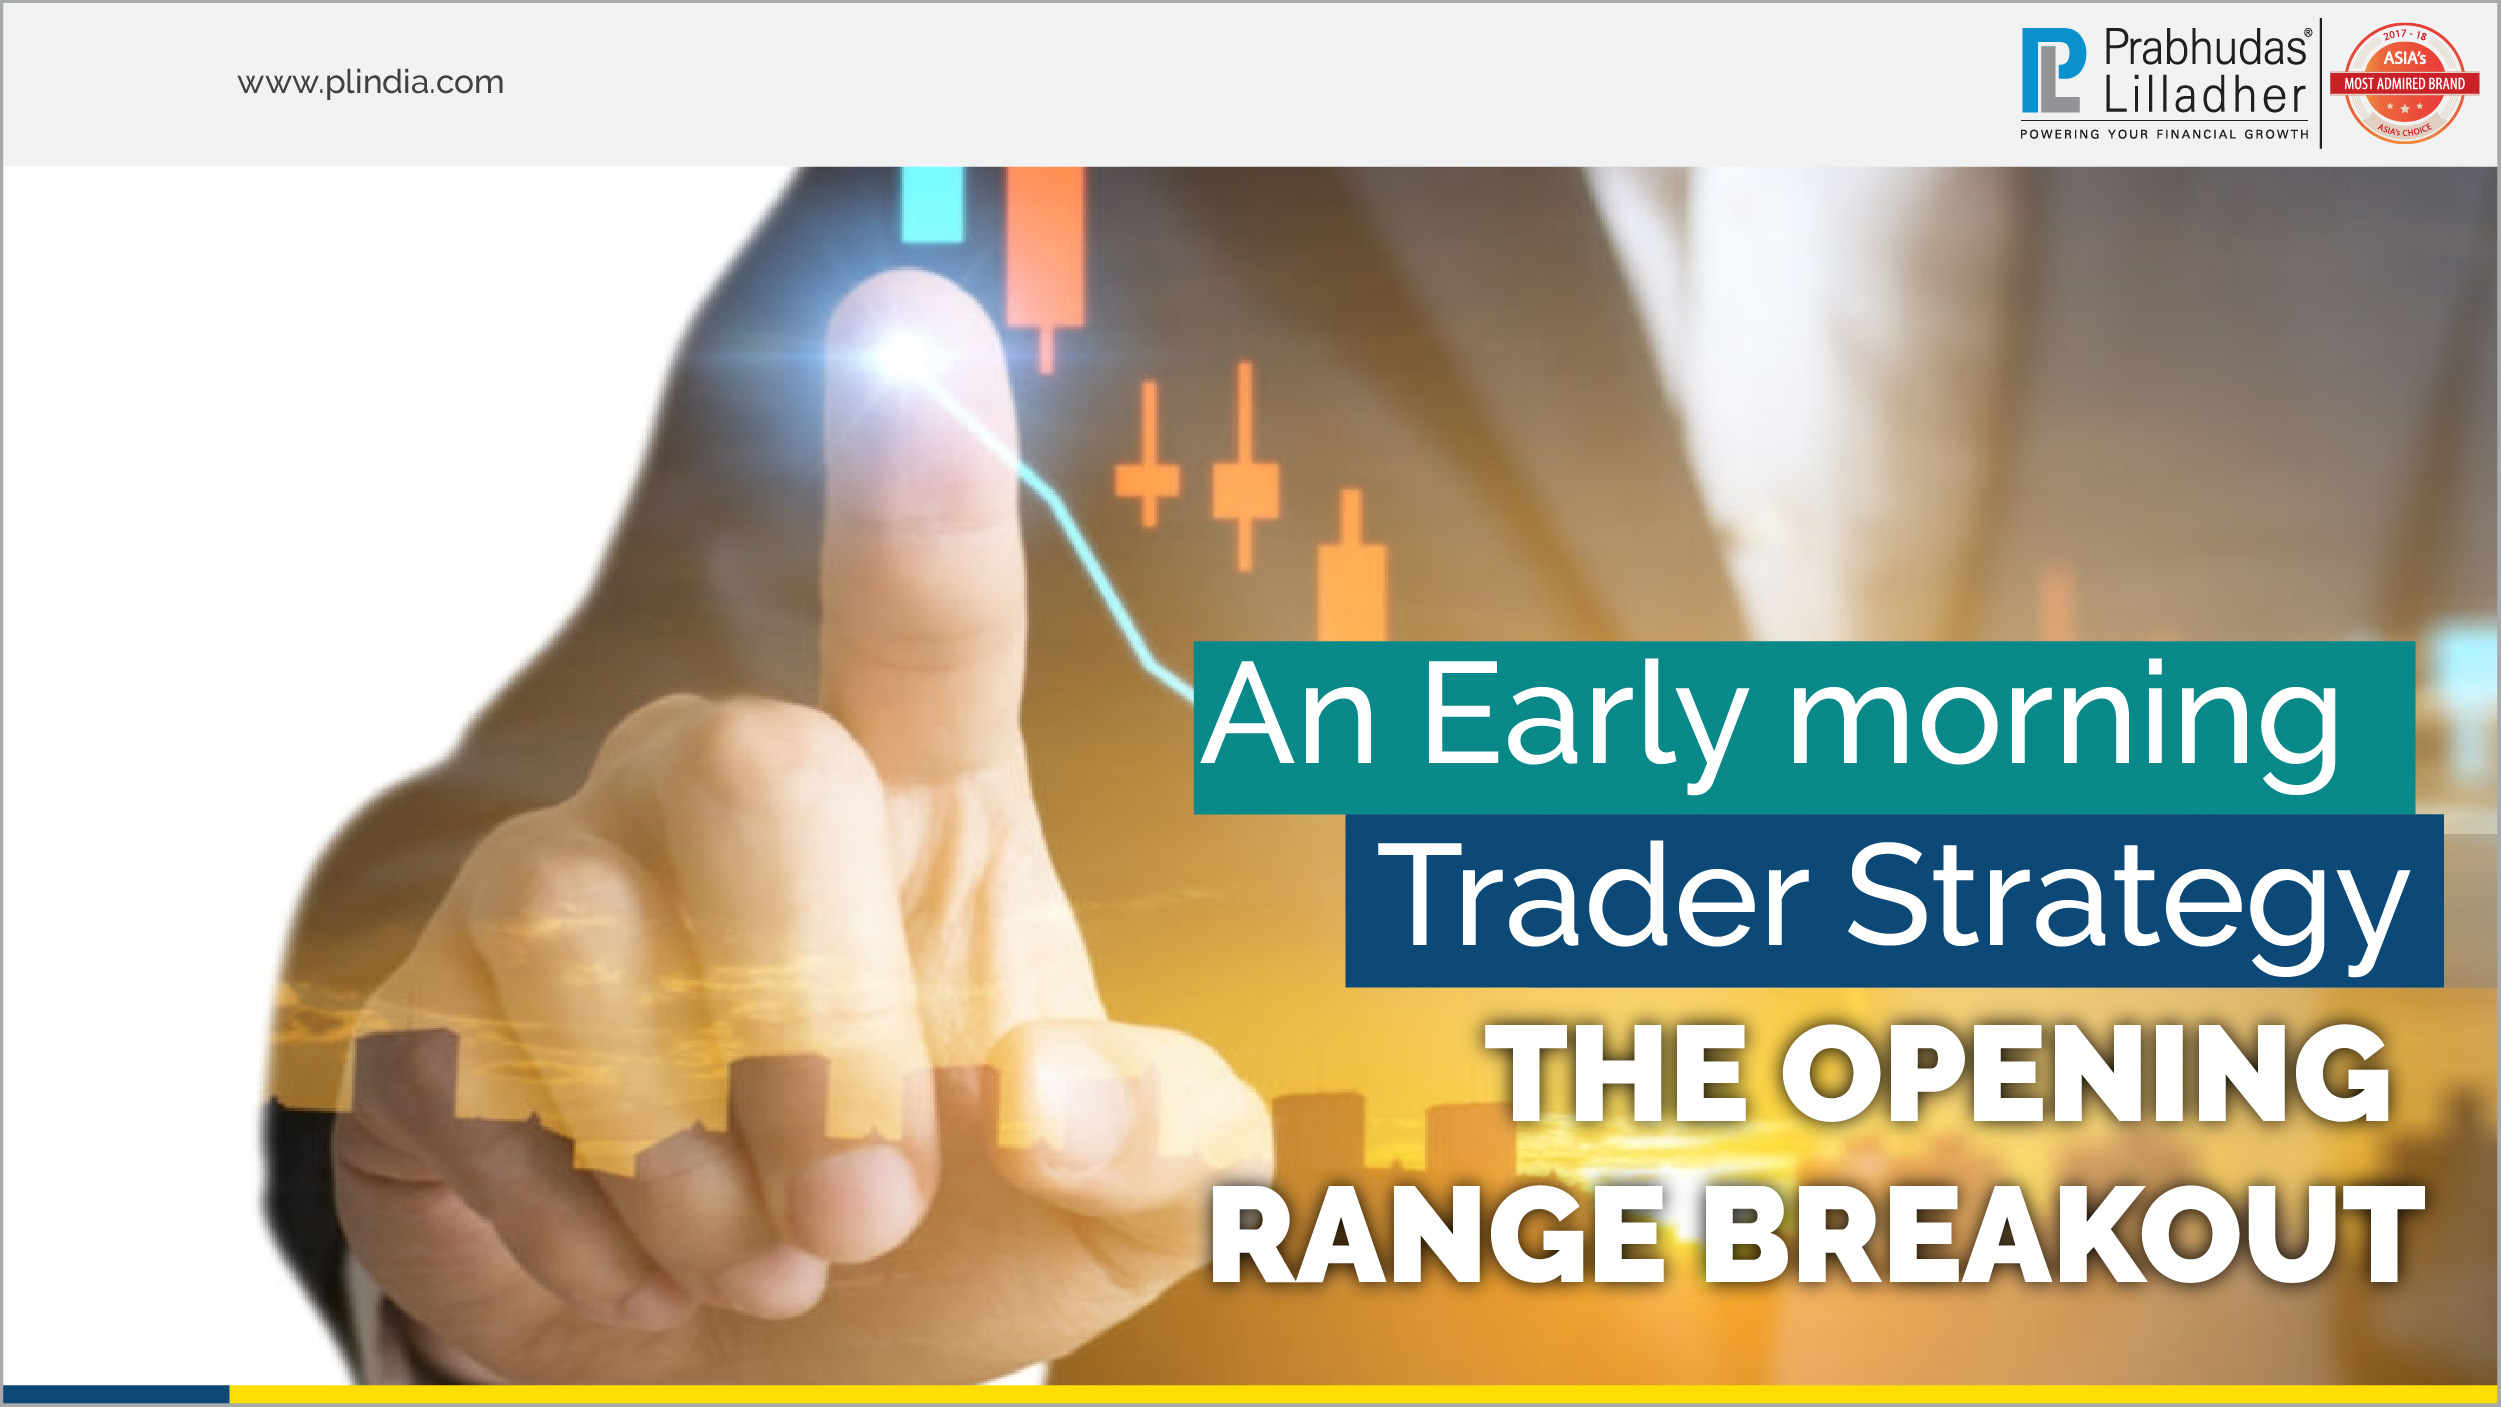 An Early Morning Trader Strategy: The Opening Range Breakout